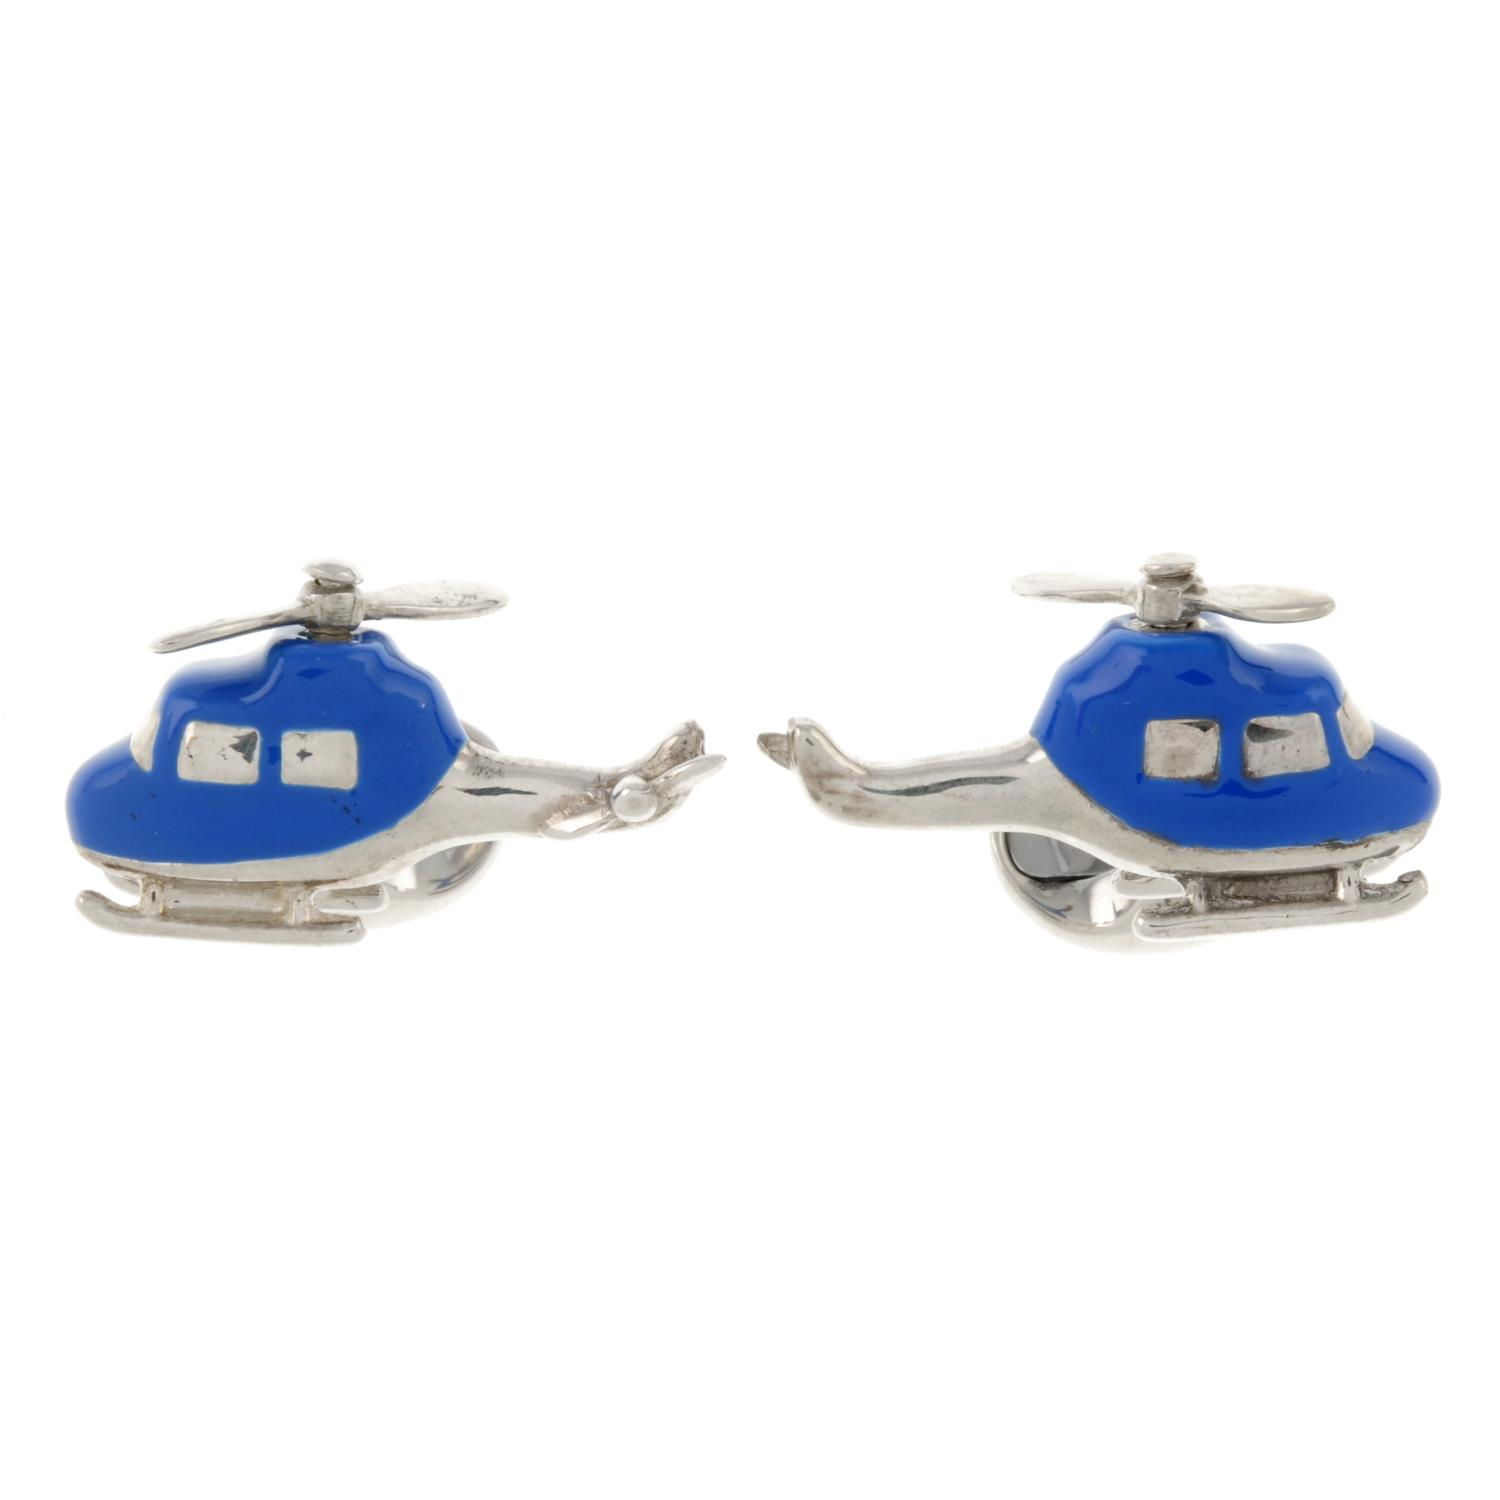 A pair of silver and blue enamel helicopter cufflinks with rotating propeller,